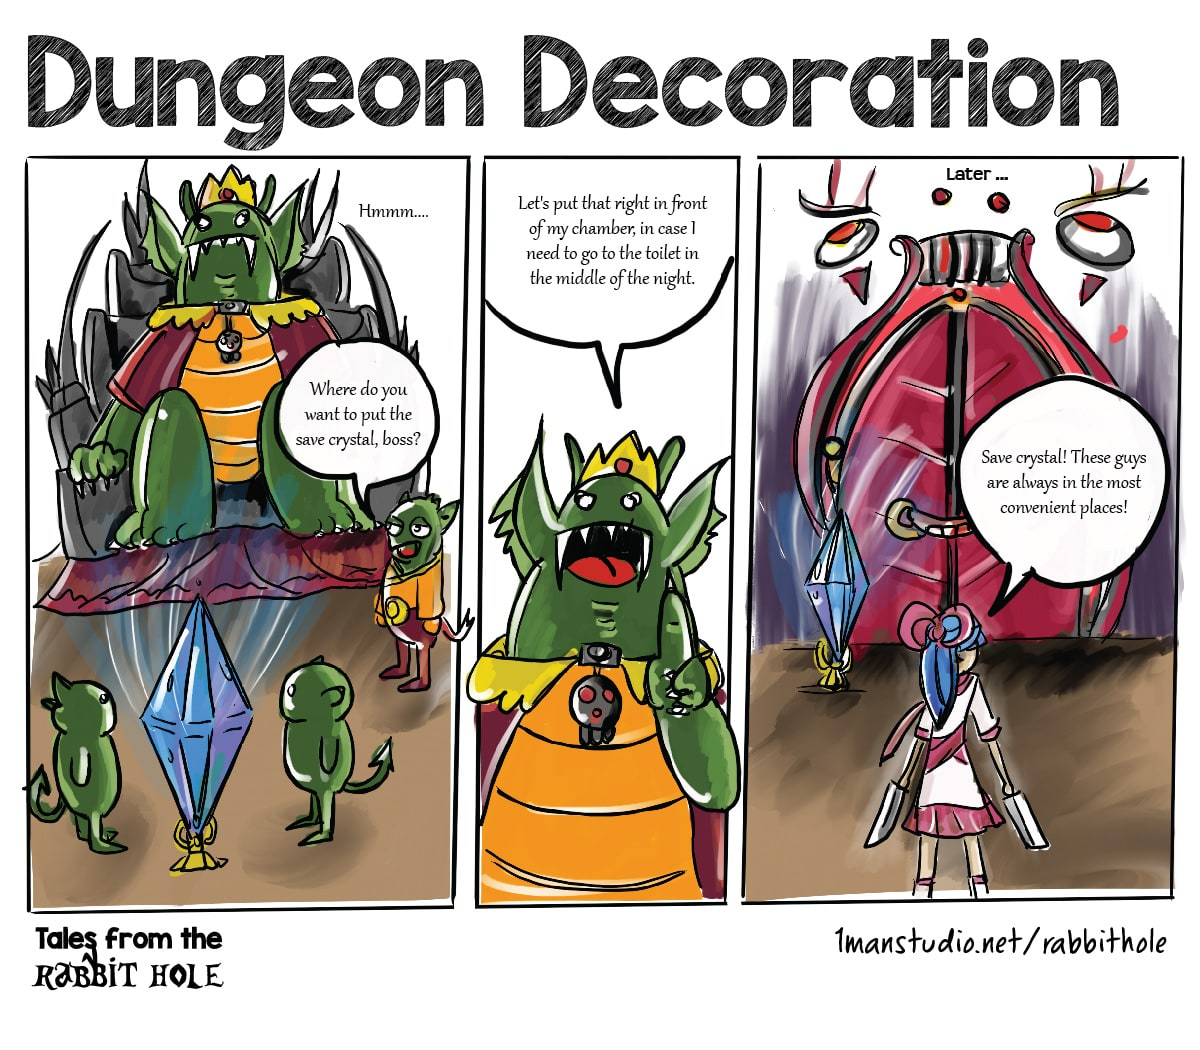 Dungeon Decoration - Tales from the Rabbit Hole